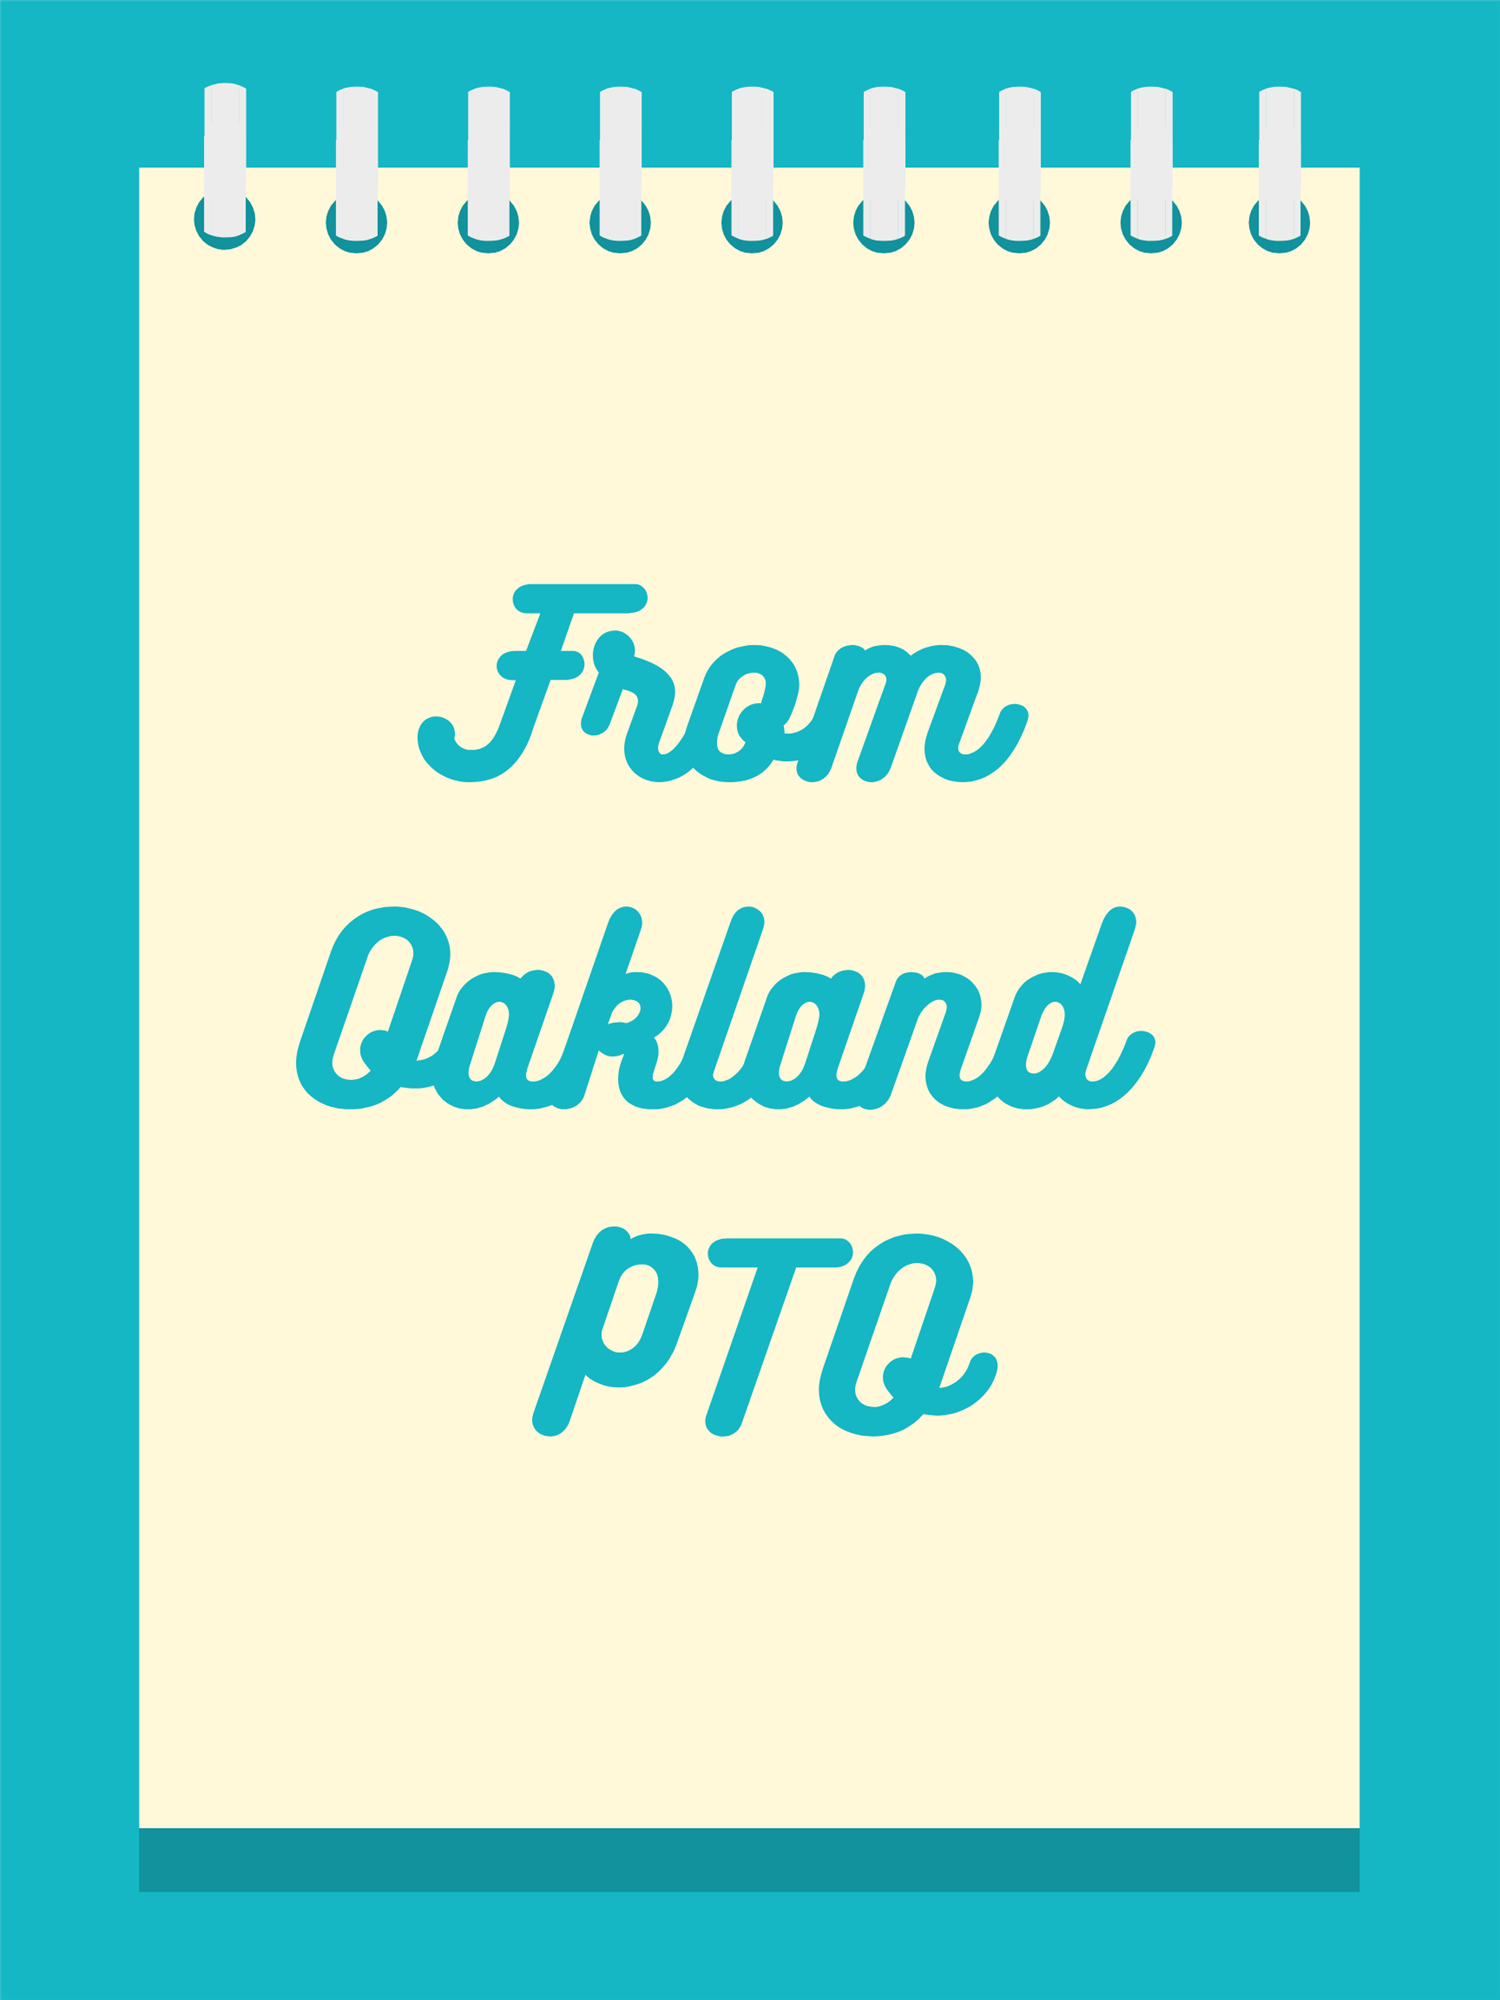 notebook clipart with text that says PTO update